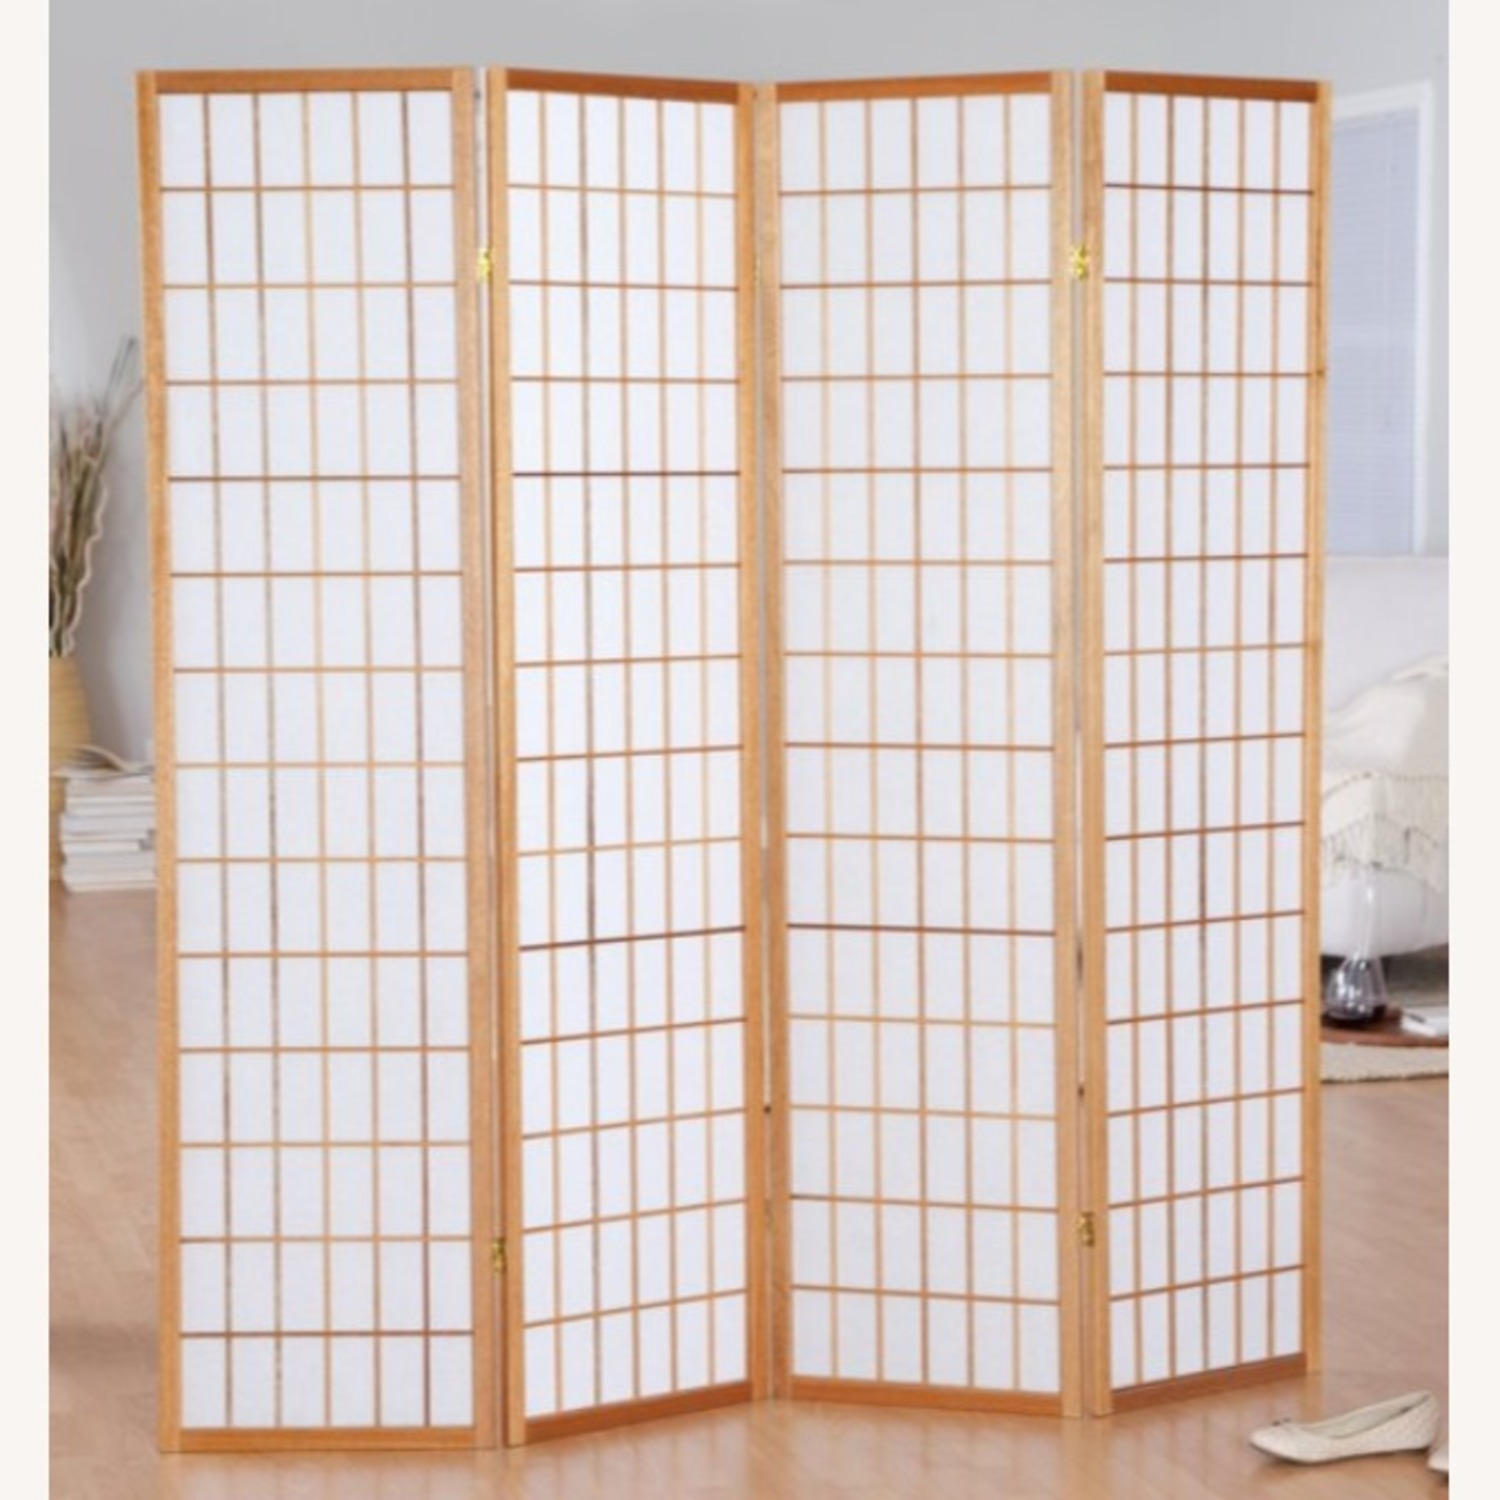 Jakun 4 Panel Shoji Room Divider with Stand - image-1